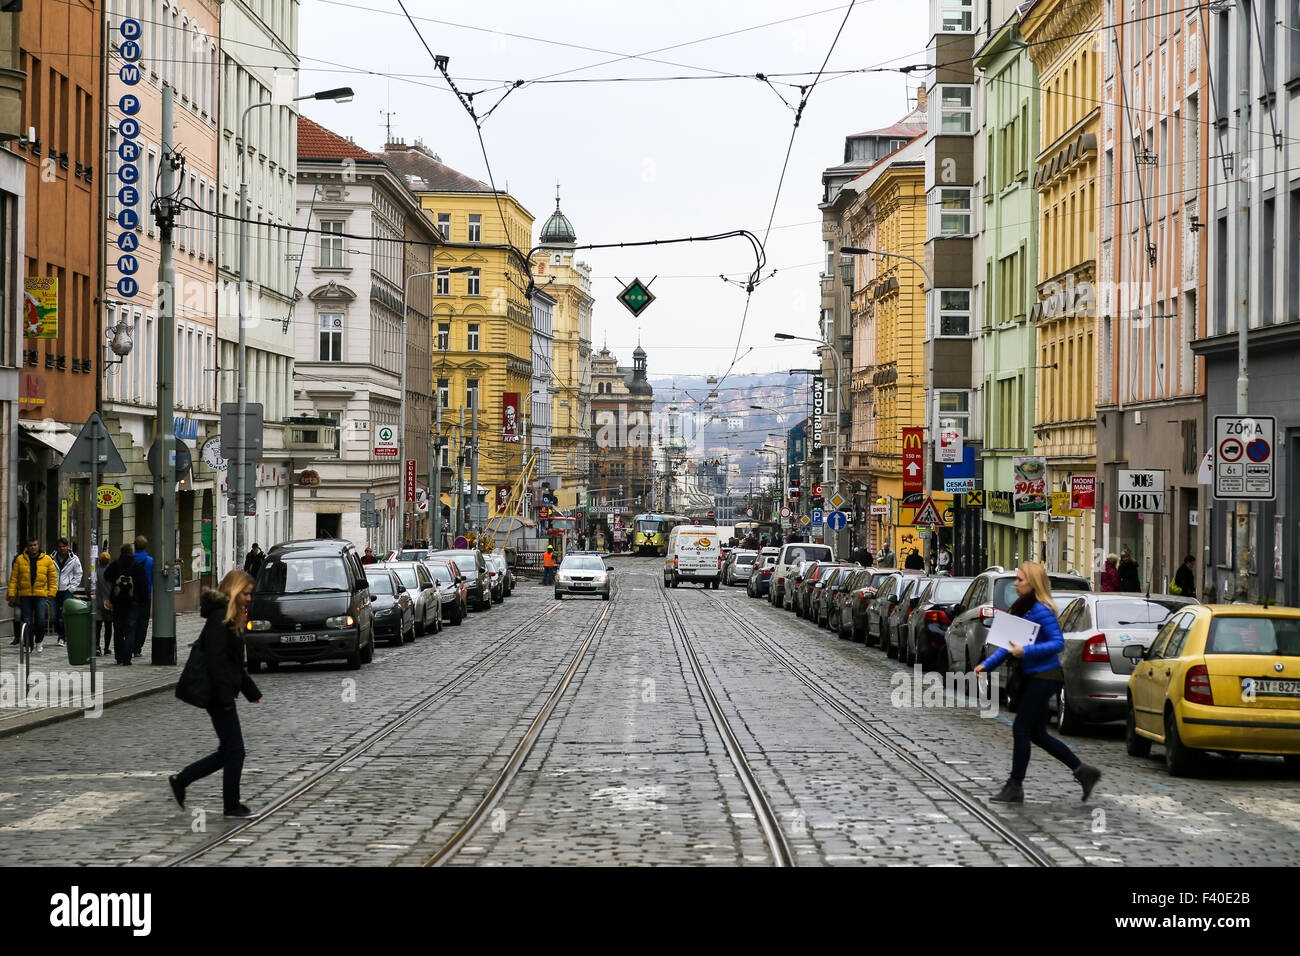 Daily Life in Prague - Stock Image